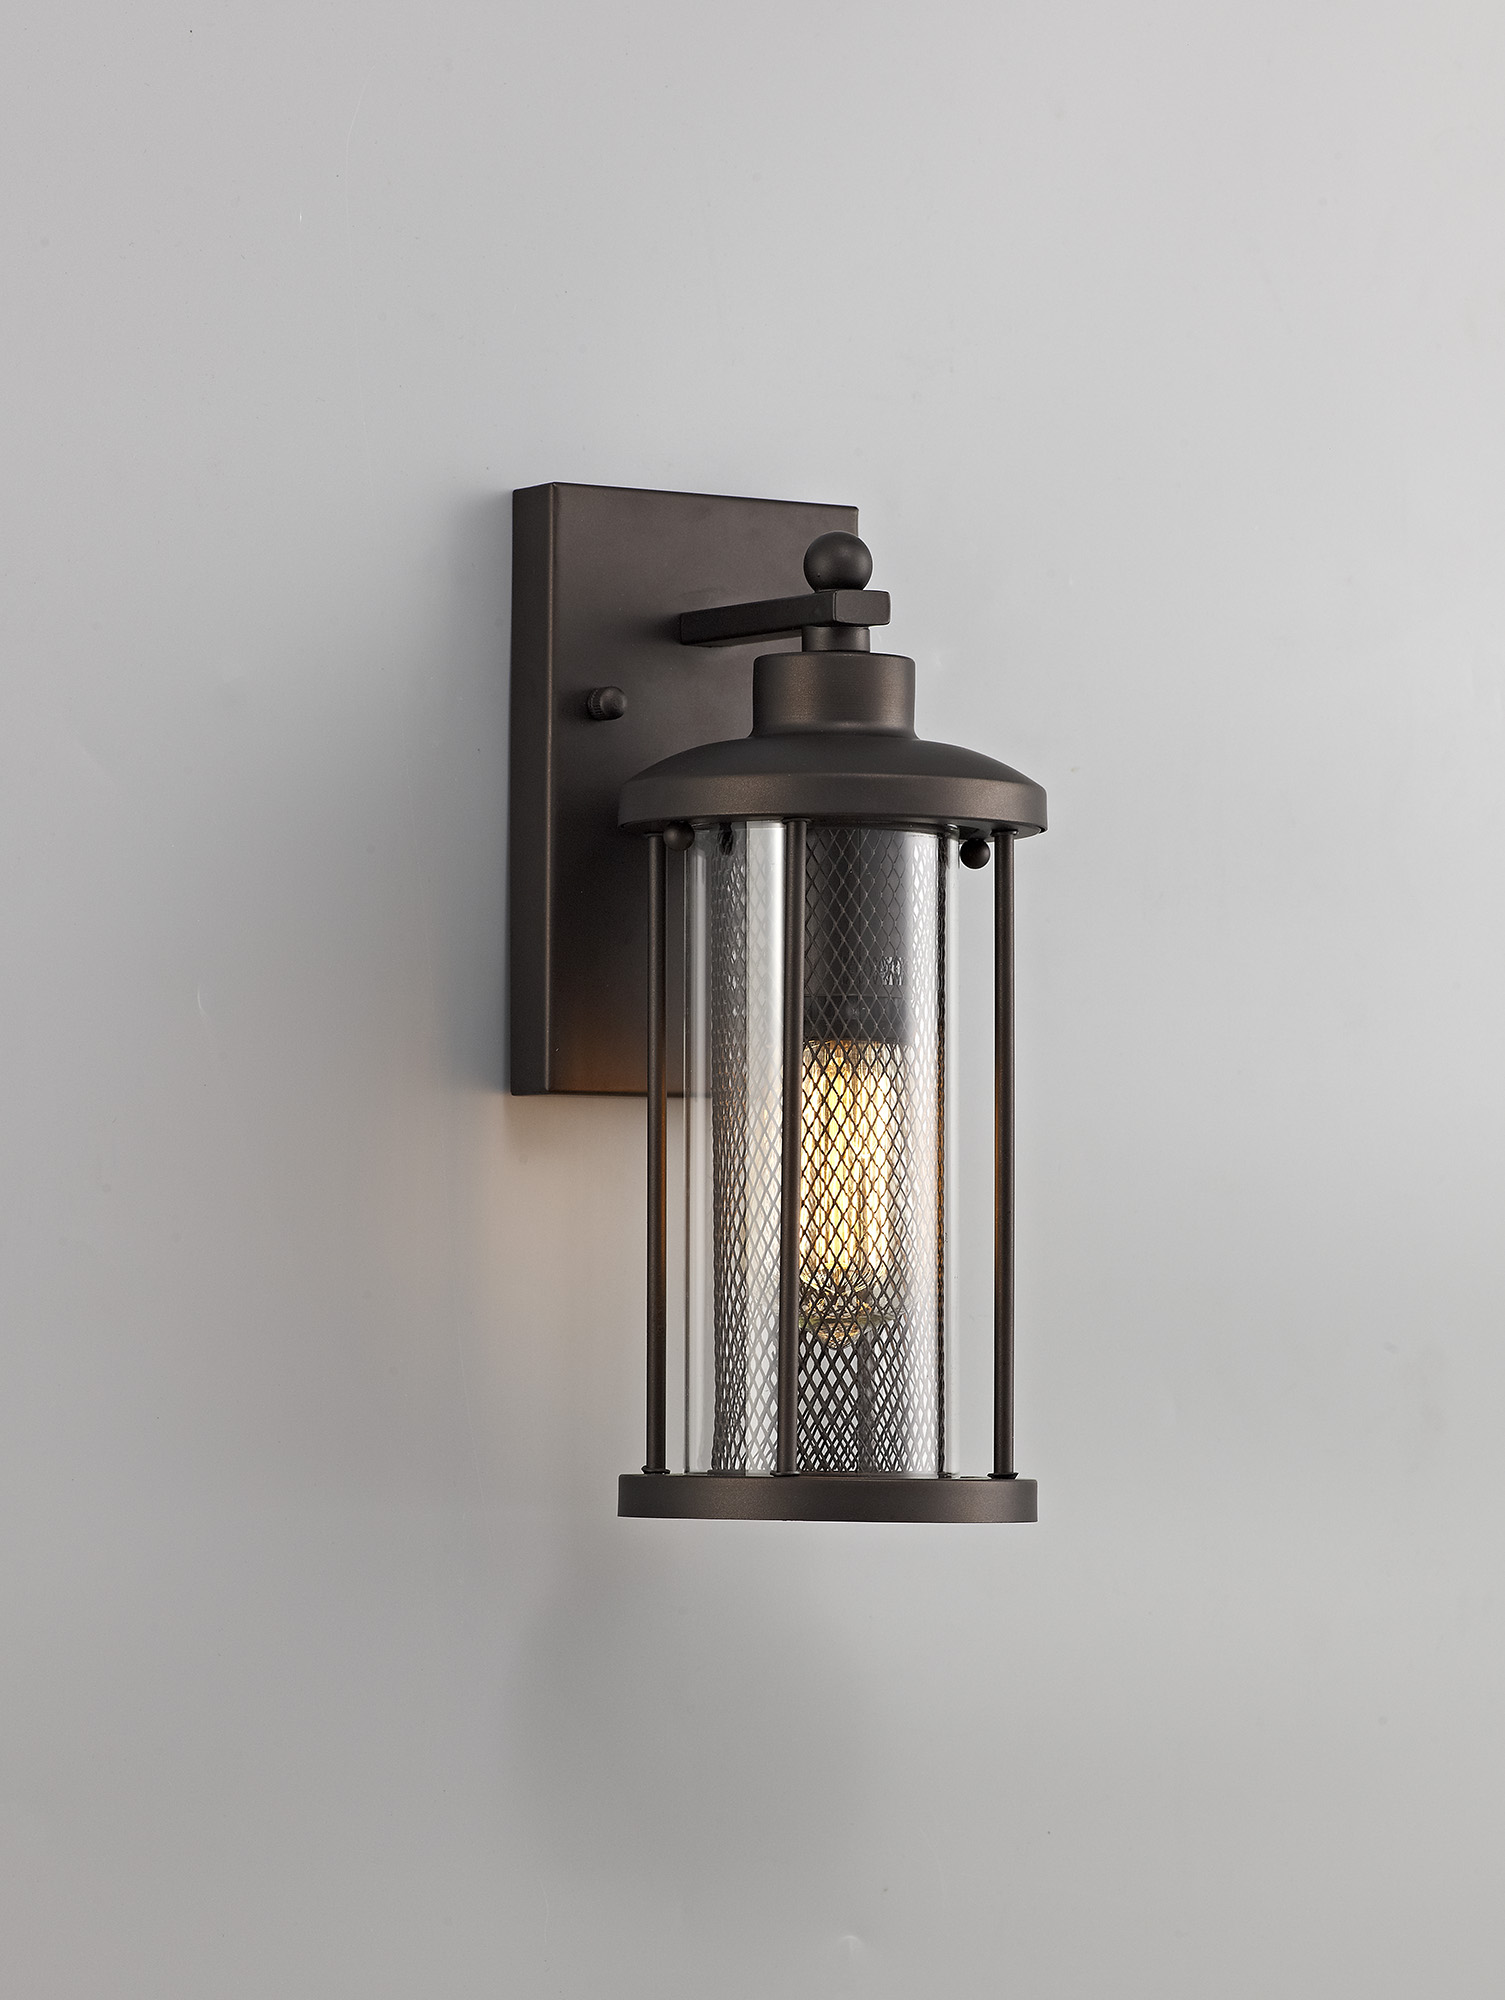 Small Wall Lamp, 1 x E27, Antique Bronze/Clear Glass, IP54, 2yrs Warranty